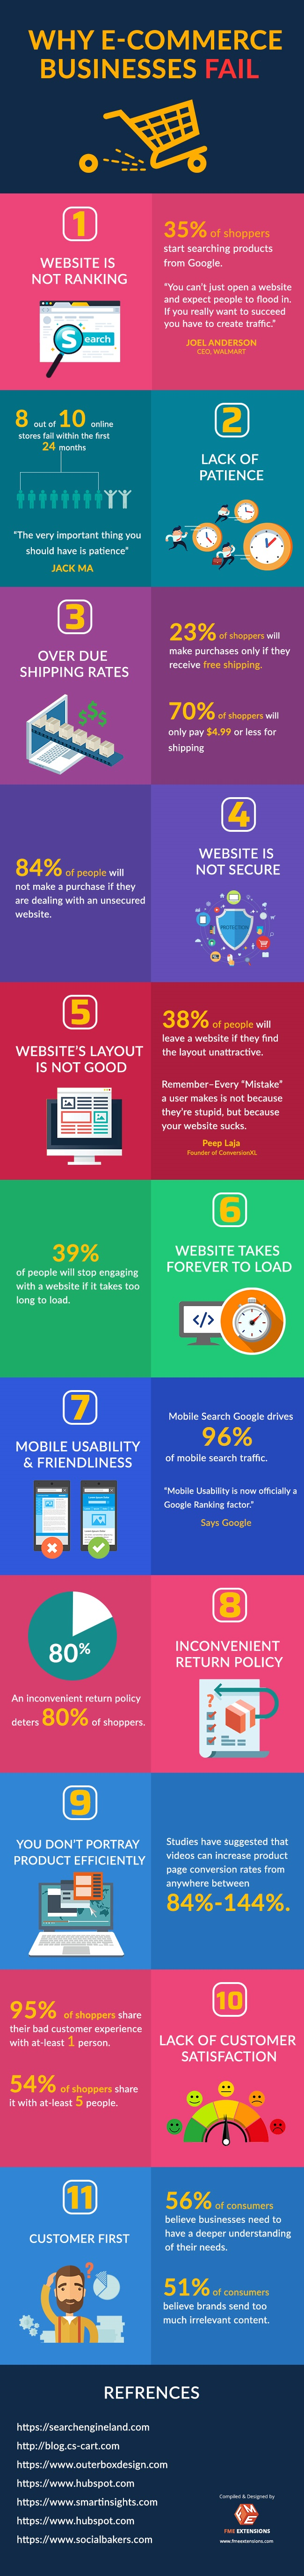 Infographic lists key, common problems with eCommerce sites